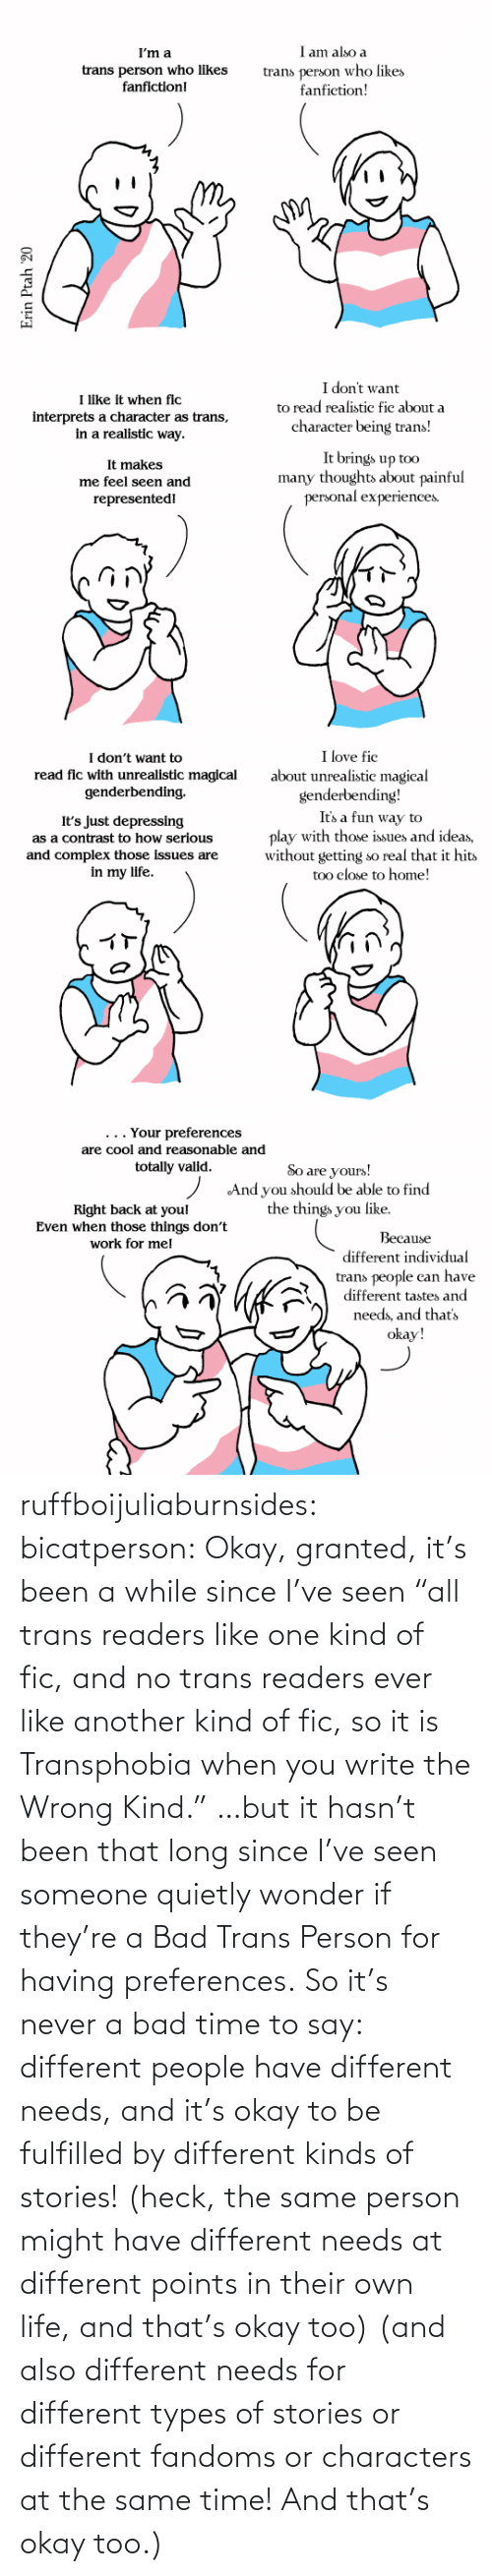 "Bad Time: ruffboijuliaburnsides: bicatperson:   Okay, granted, it's been a while since I've seen ""all trans readers  like one kind of fic, and no trans readers ever like another kind of  fic, so it is Transphobia when you write the Wrong Kind."" …but it hasn't been that long since I've seen someone quietly wonder if they're a Bad Trans Person for having preferences. So  it's never a bad time to say: different people have different needs,  and it's okay to be fulfilled by different kinds of stories! (heck, the same person might have different needs at different points in their own life, and that's okay too)    (and also different needs for different types of stories or different fandoms or characters at the same time!  And that's okay too.)"